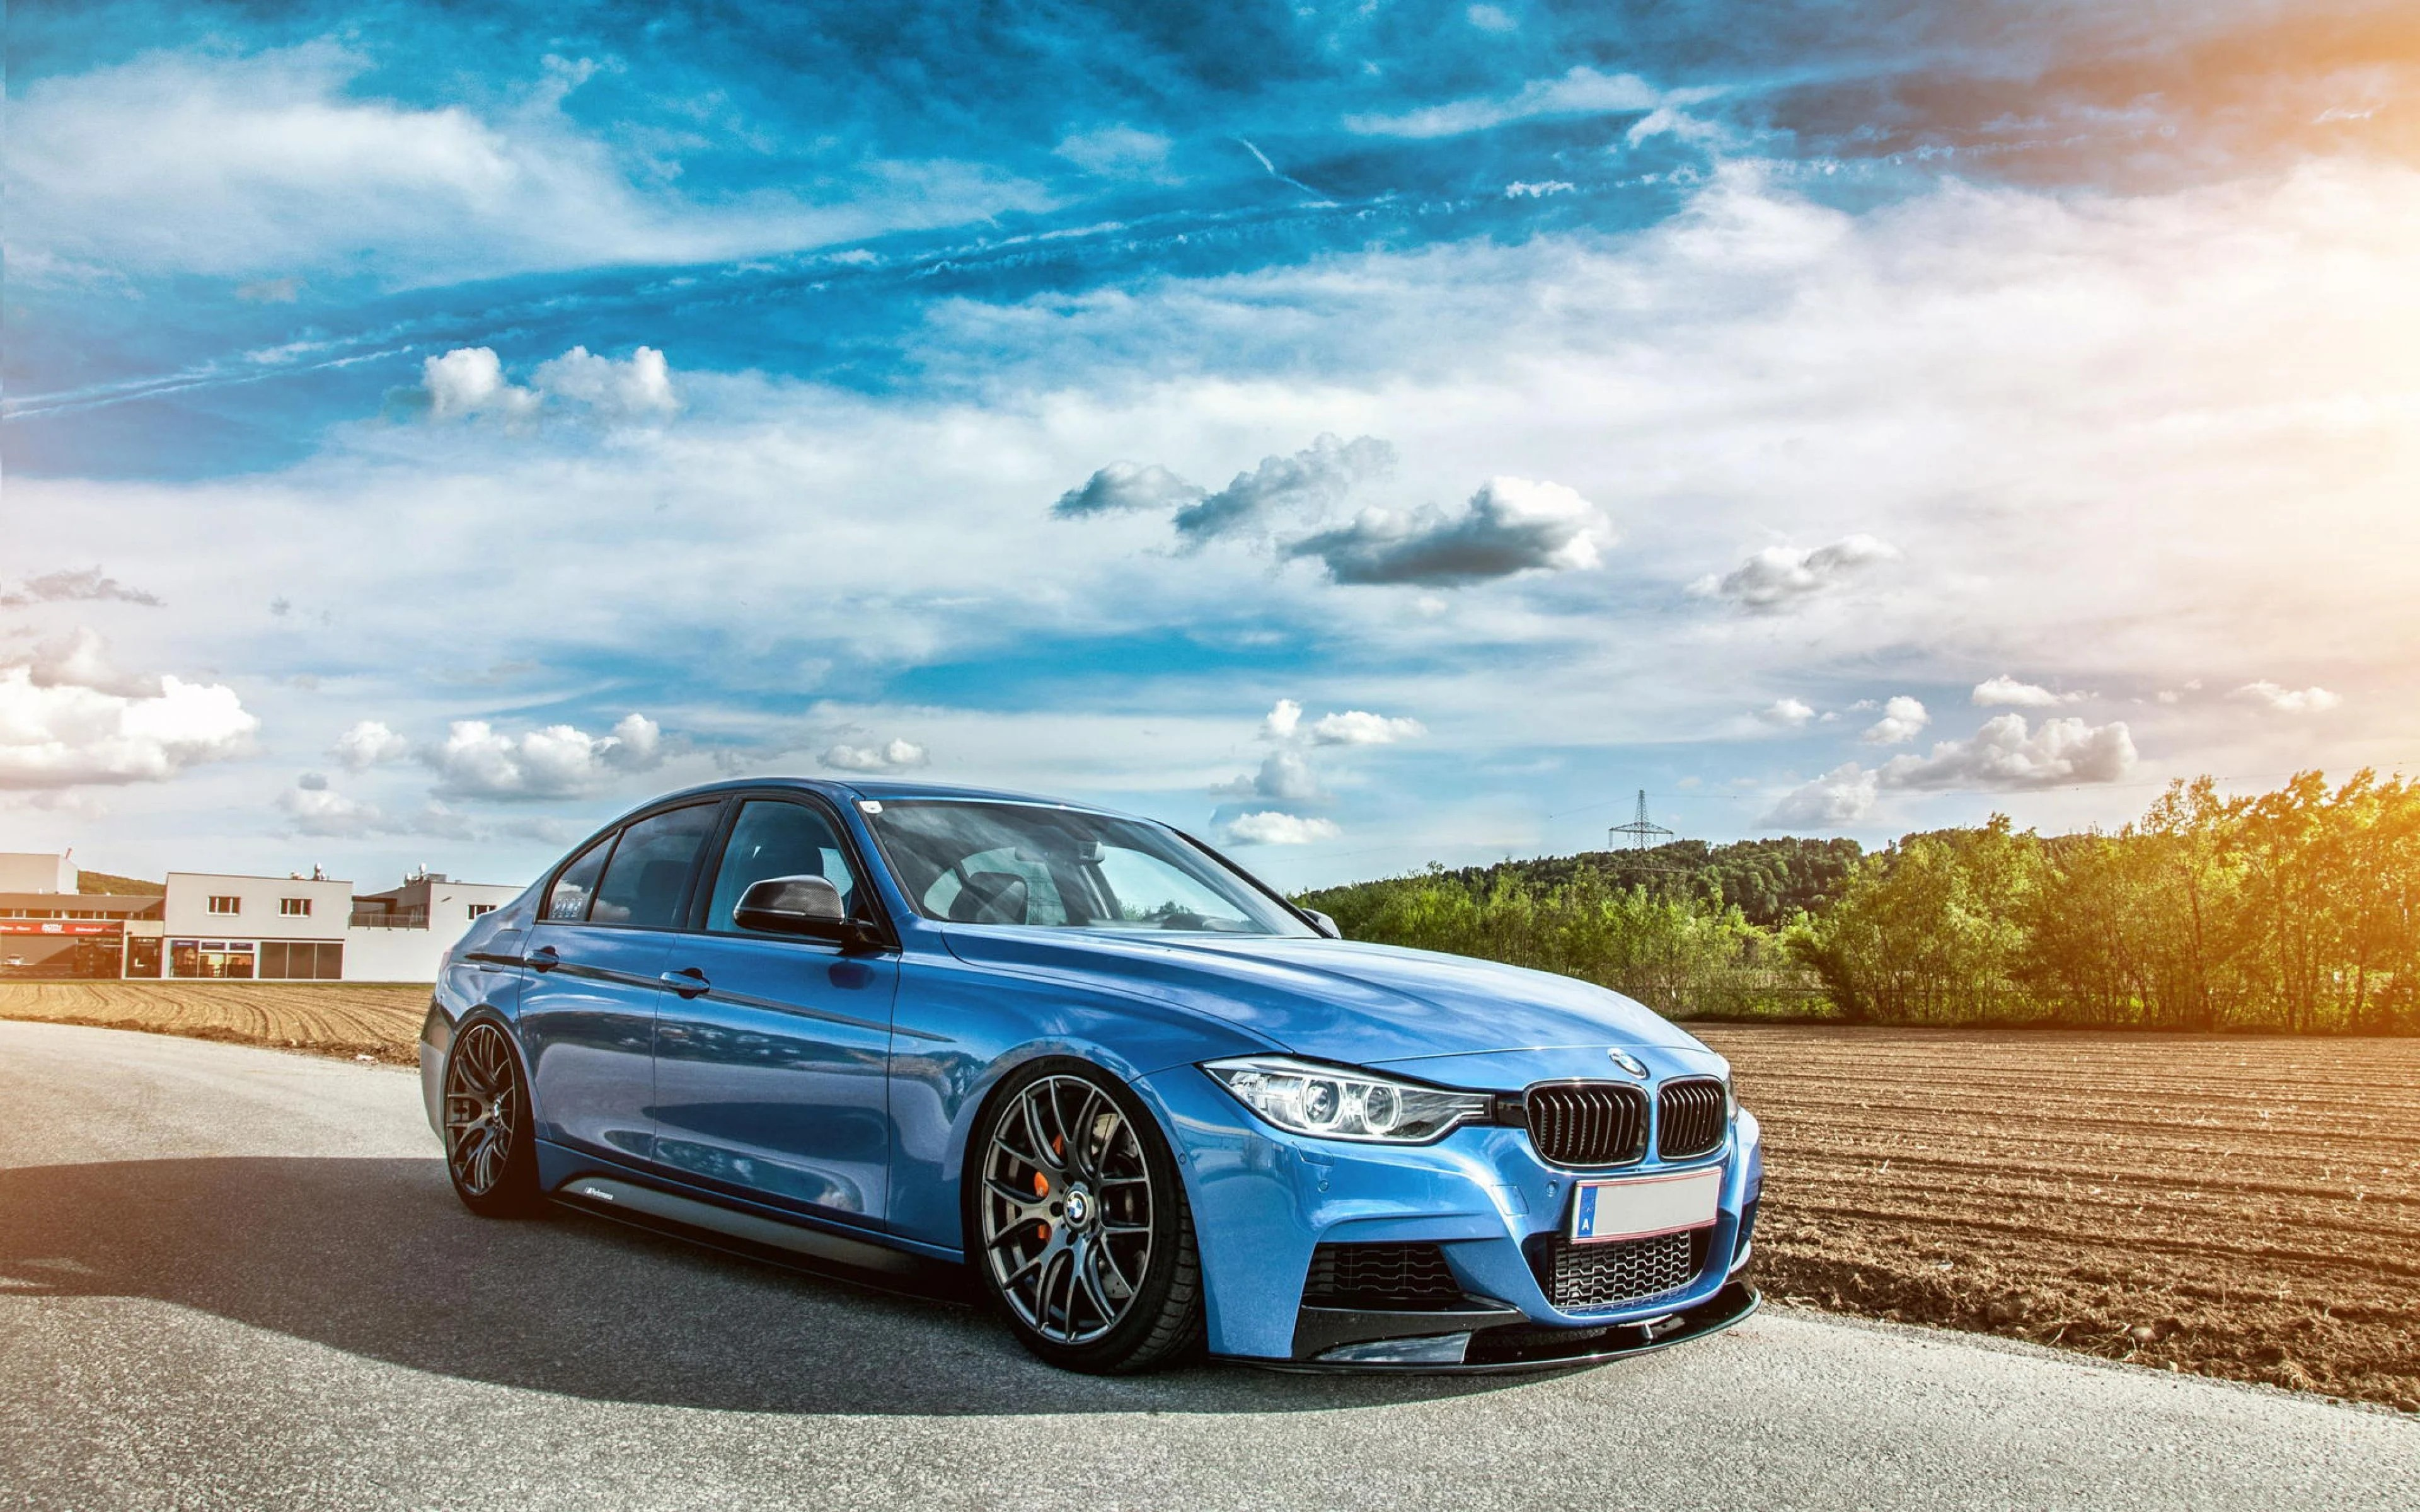 Download Bmw 435I Wallpaper For Phone  Gif